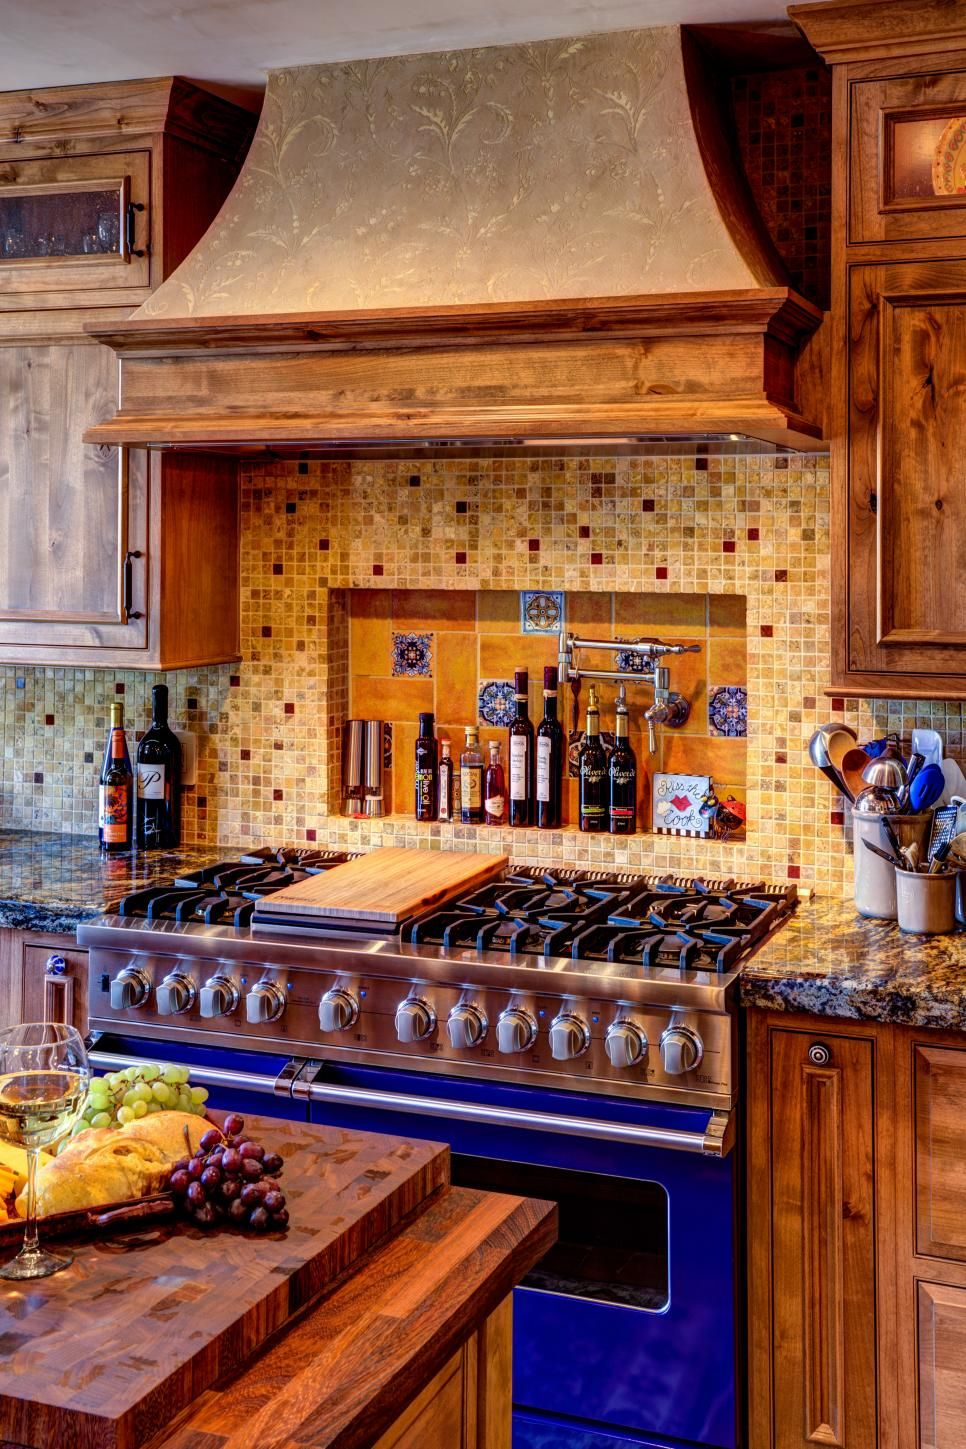 Kitchen Cabinets And Counters For Remarkable Kitchen In 2020 Mediterranean Kitchen Design Mediterranean Kitchen Rustic Kitchen Cabinets